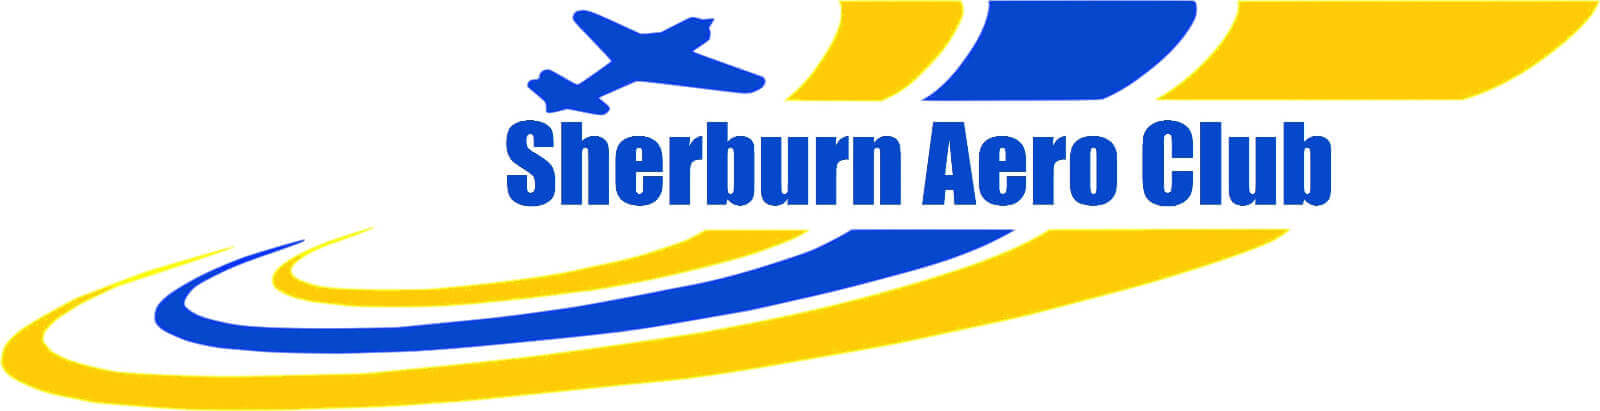 Sherburn Aero Club Logo